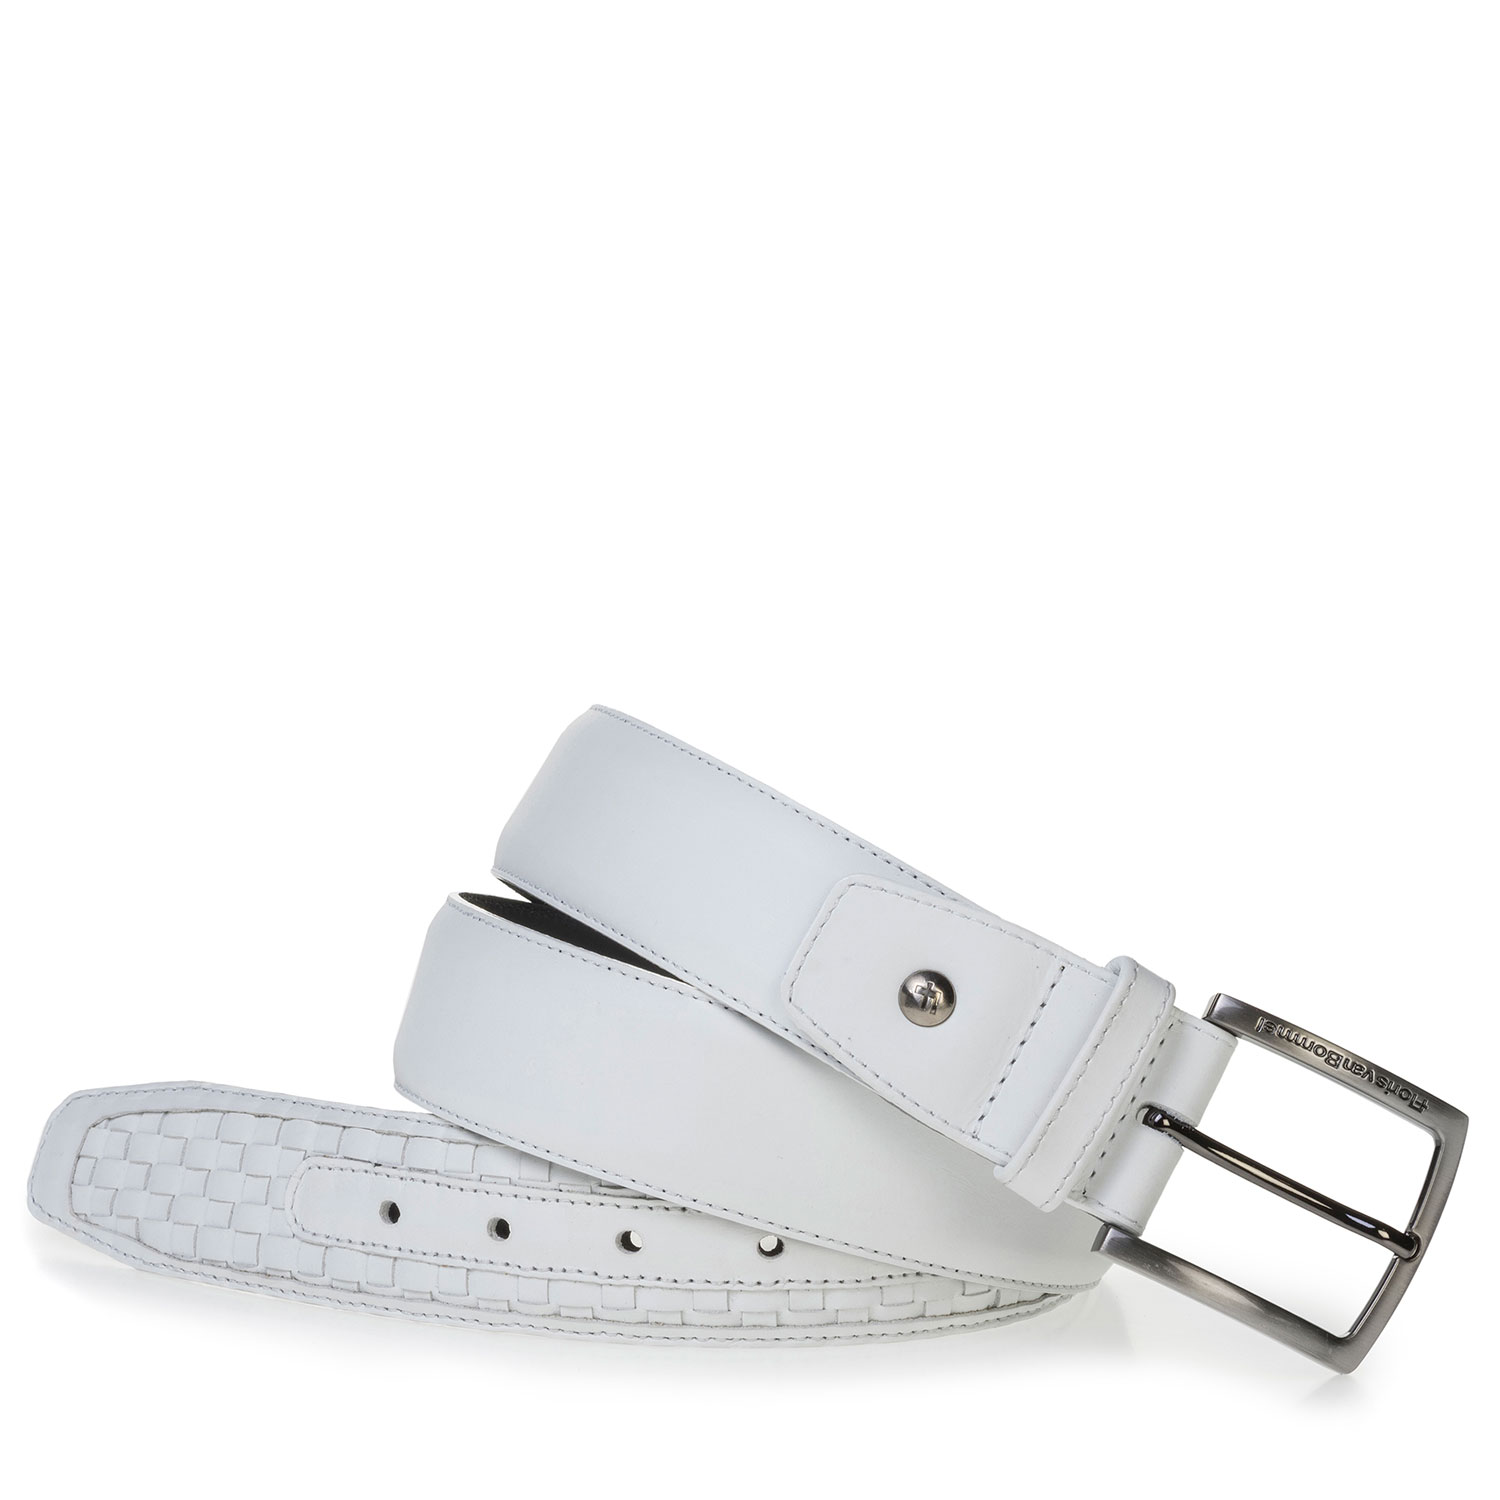 75159/32 - White braided leather belt